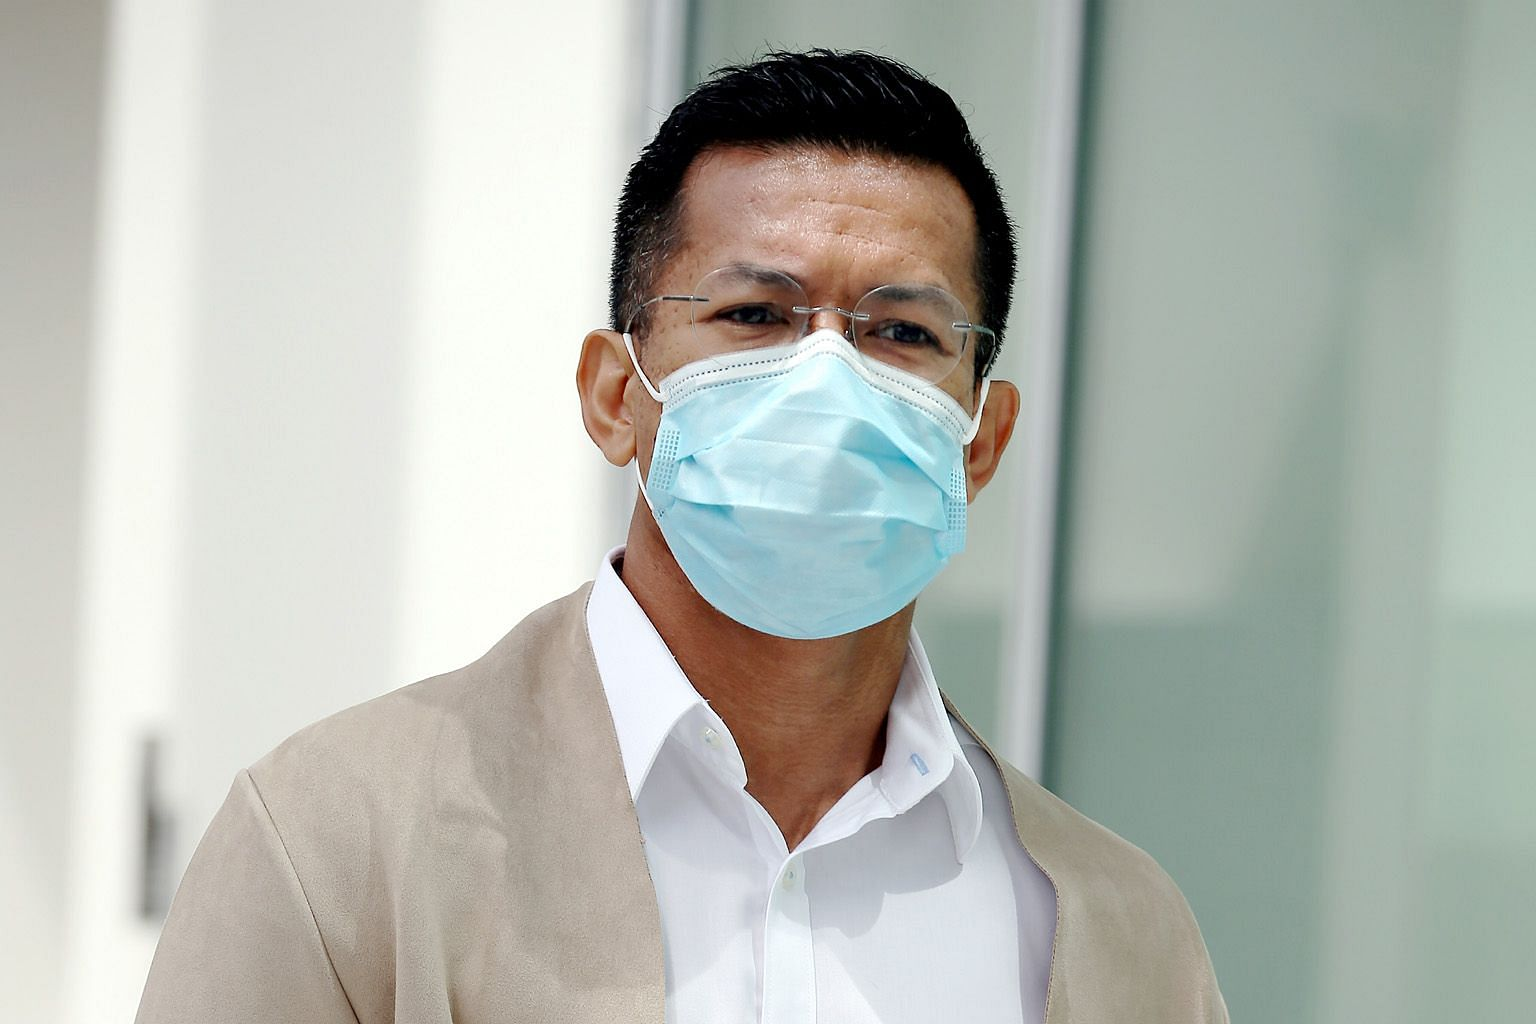 Zainal Abidin Shaiful Bahari, 34, was charged with four counts of committing acts against racial harmony.